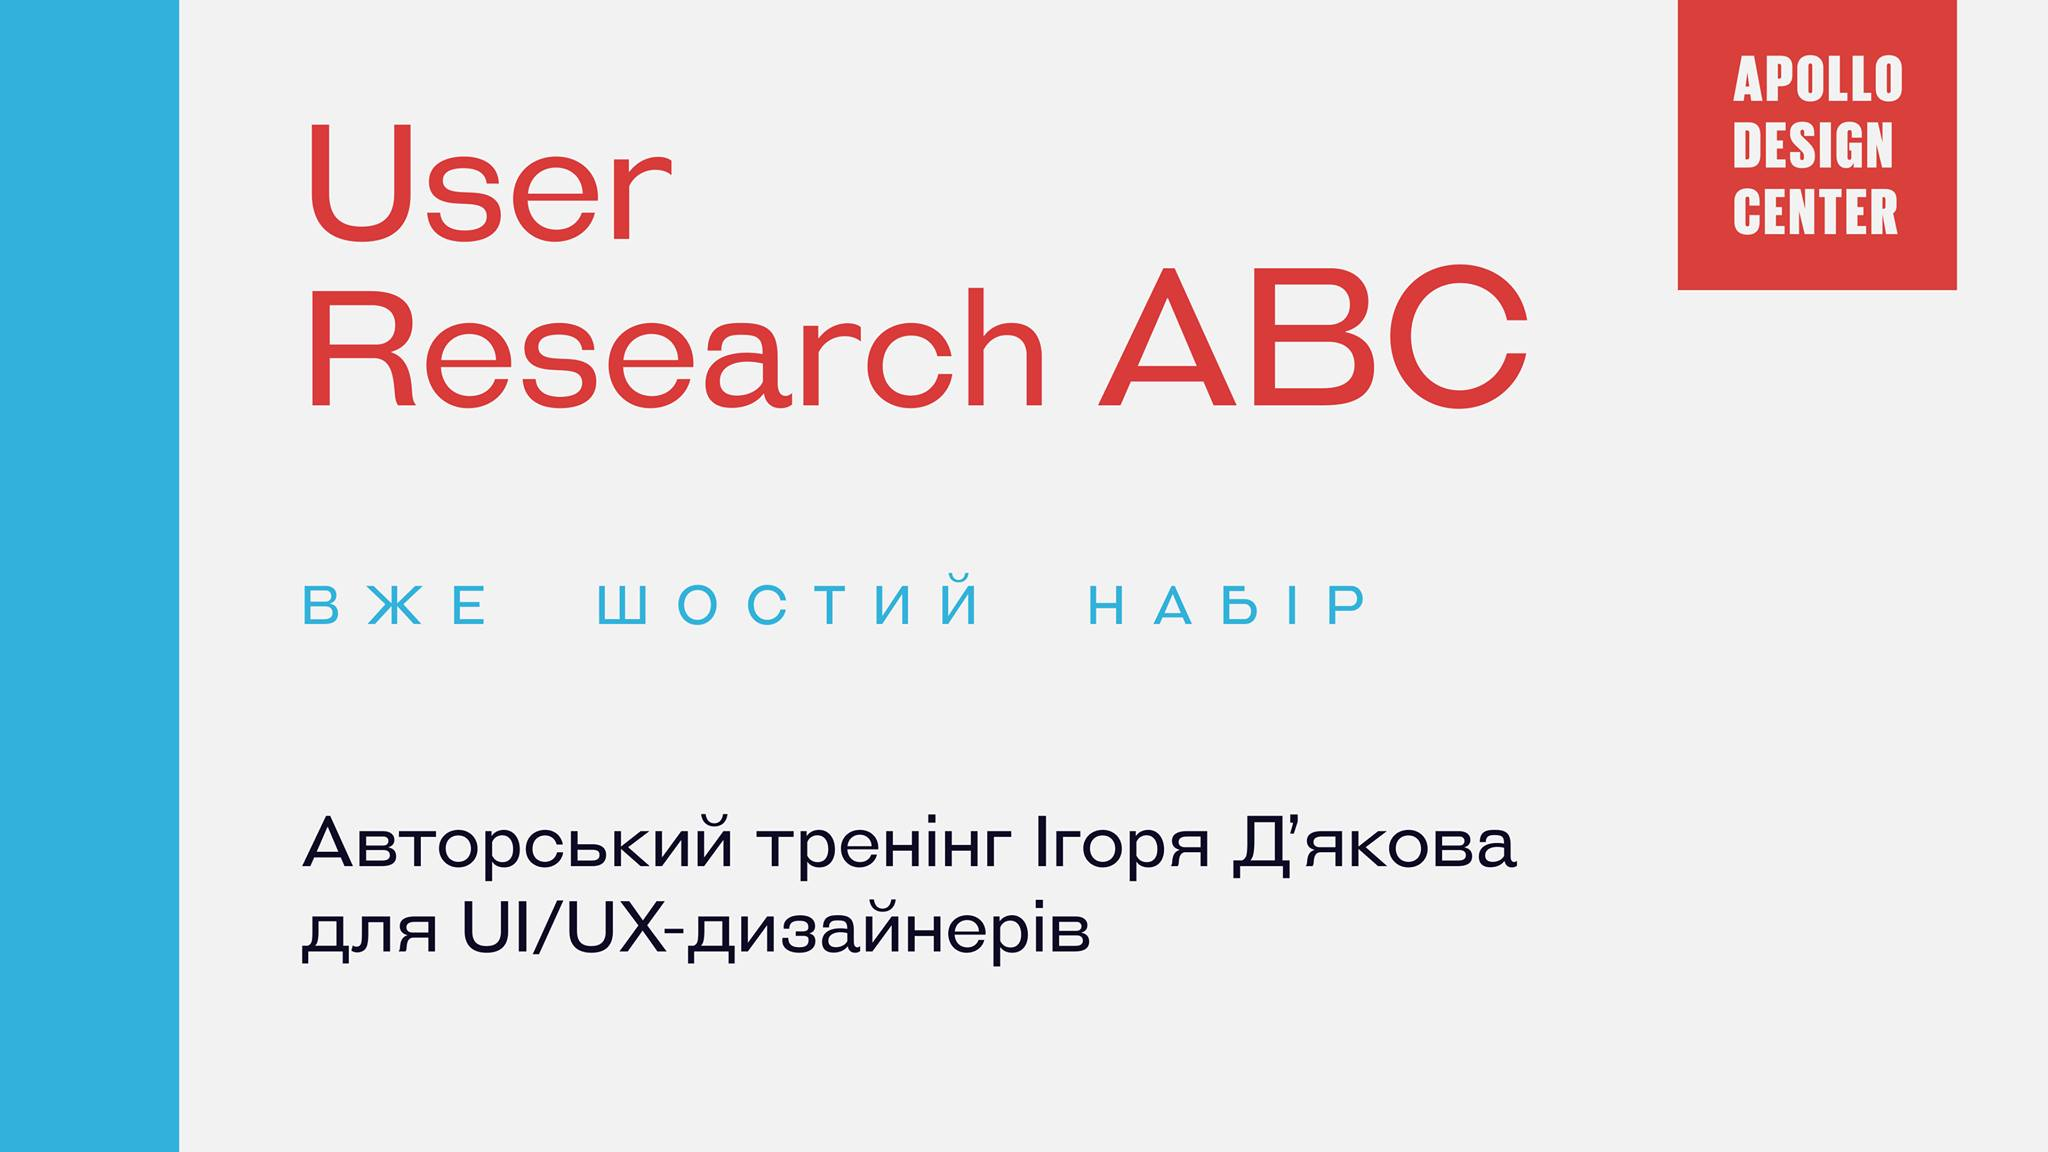 User Research ABC